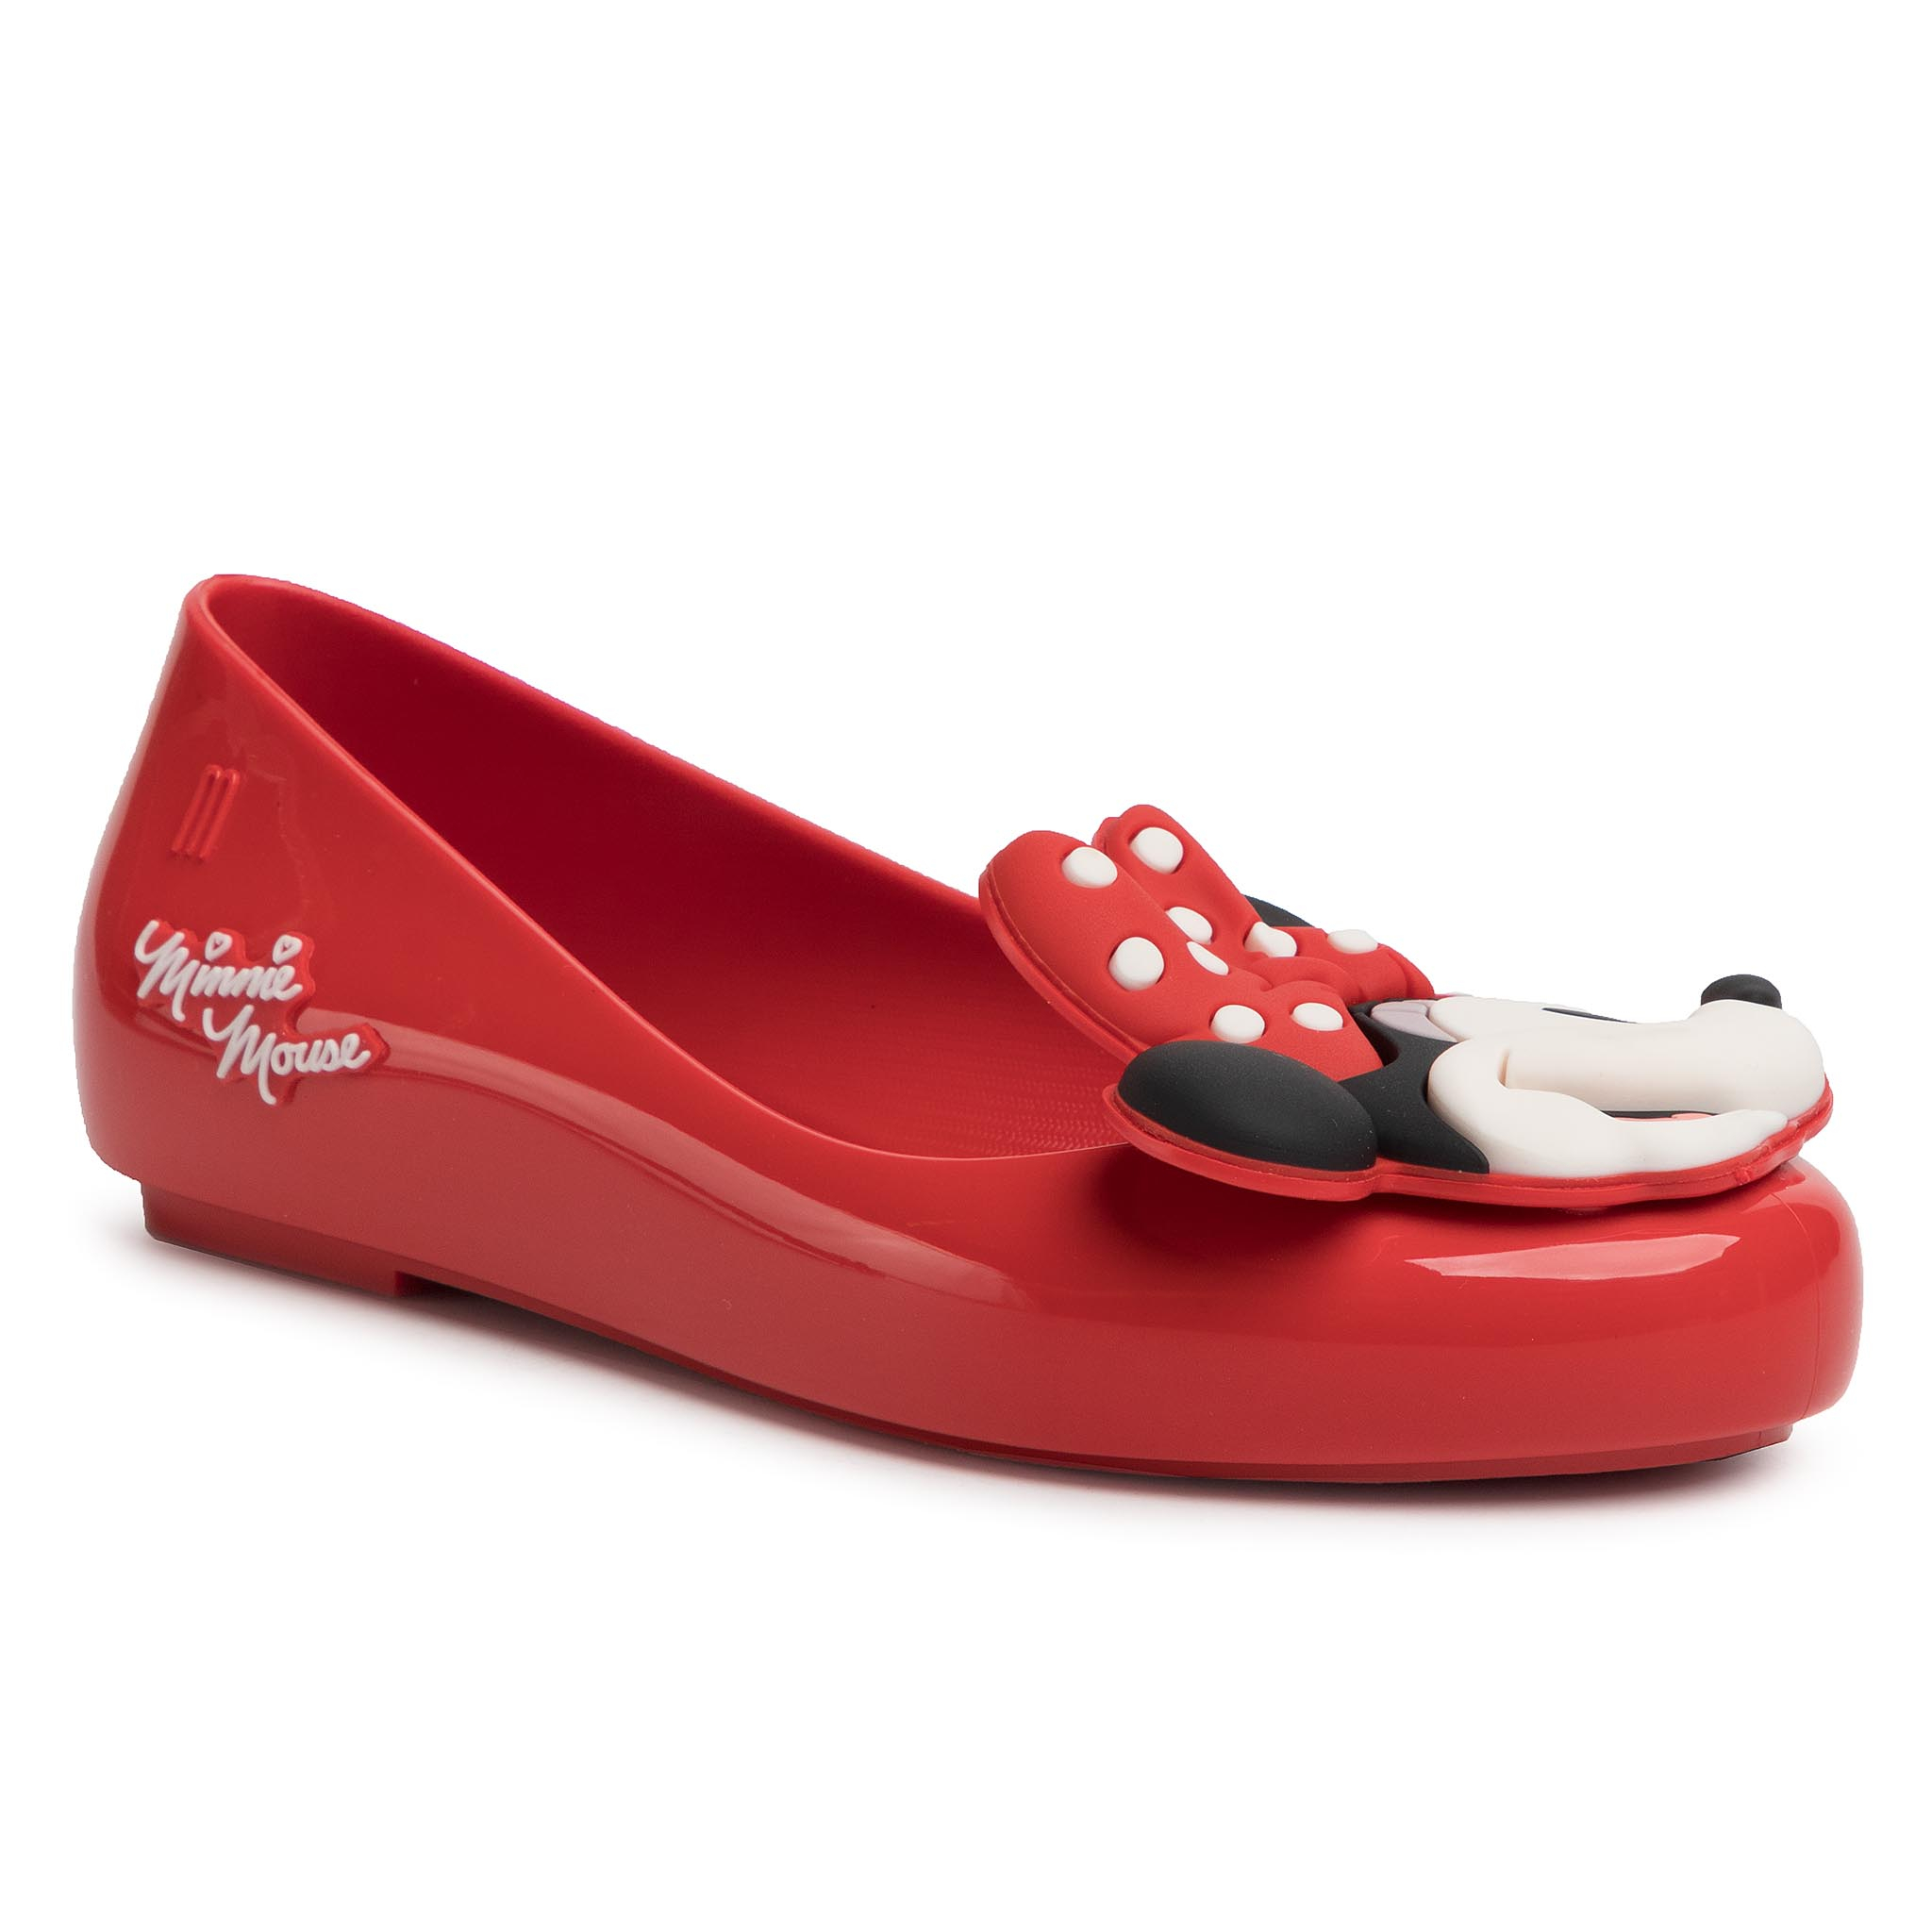 Balerinos MELISSA - Mel Sweet Love + Minnie Inf 32807 Red 01371